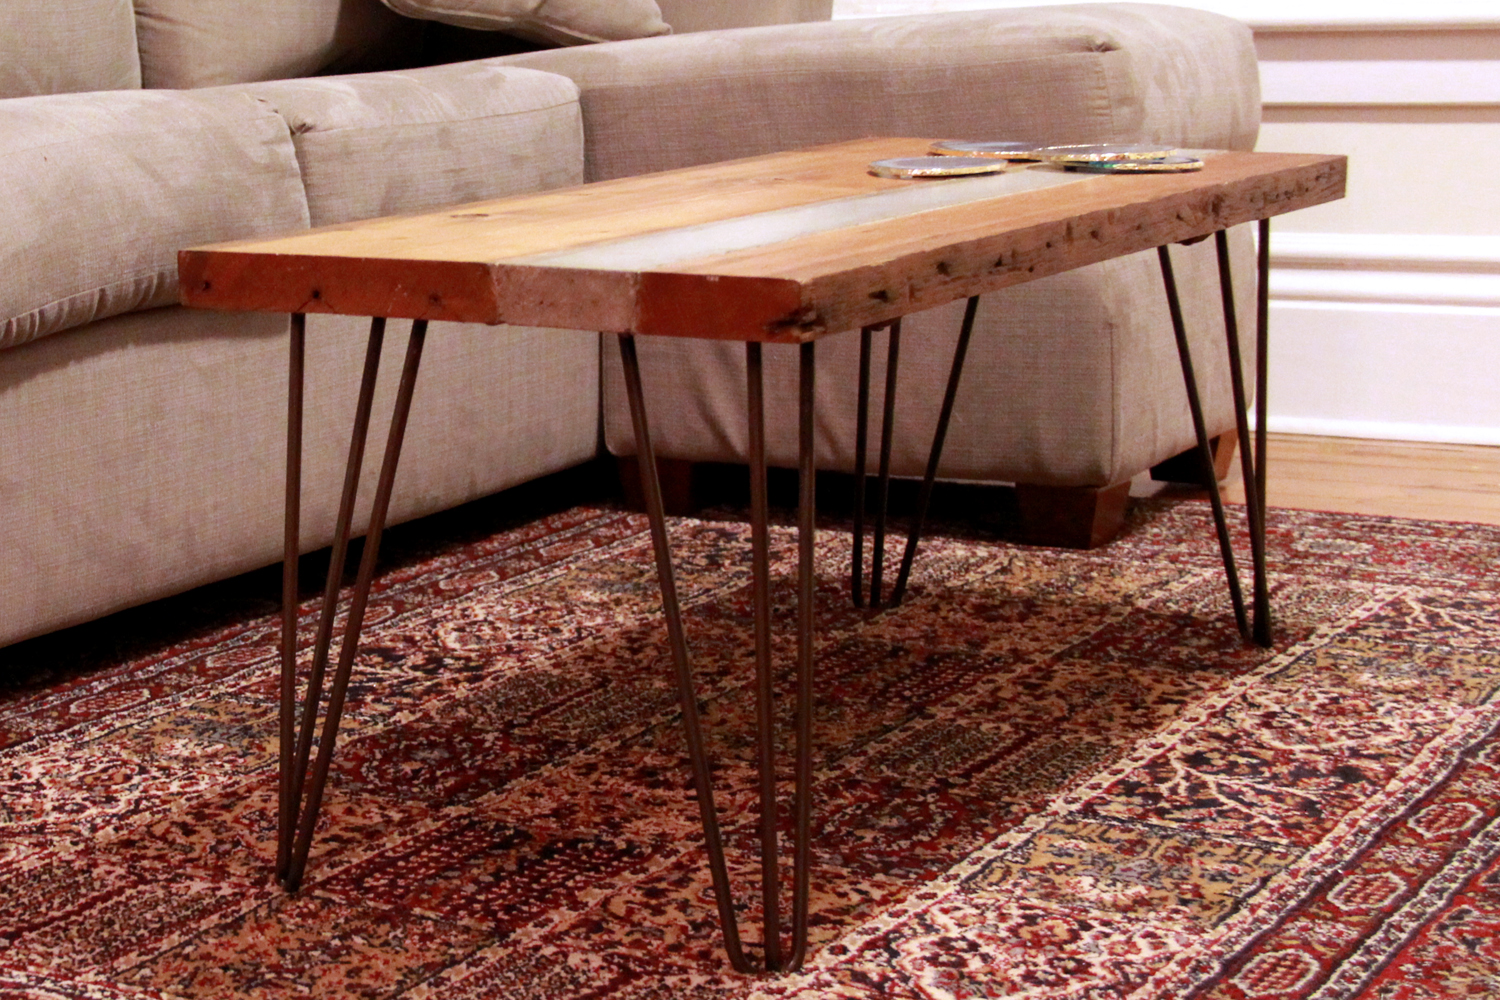 Reclaimed Wood and Concrete Coffee Table | Riverview Design Solutions | Prescott Ontario